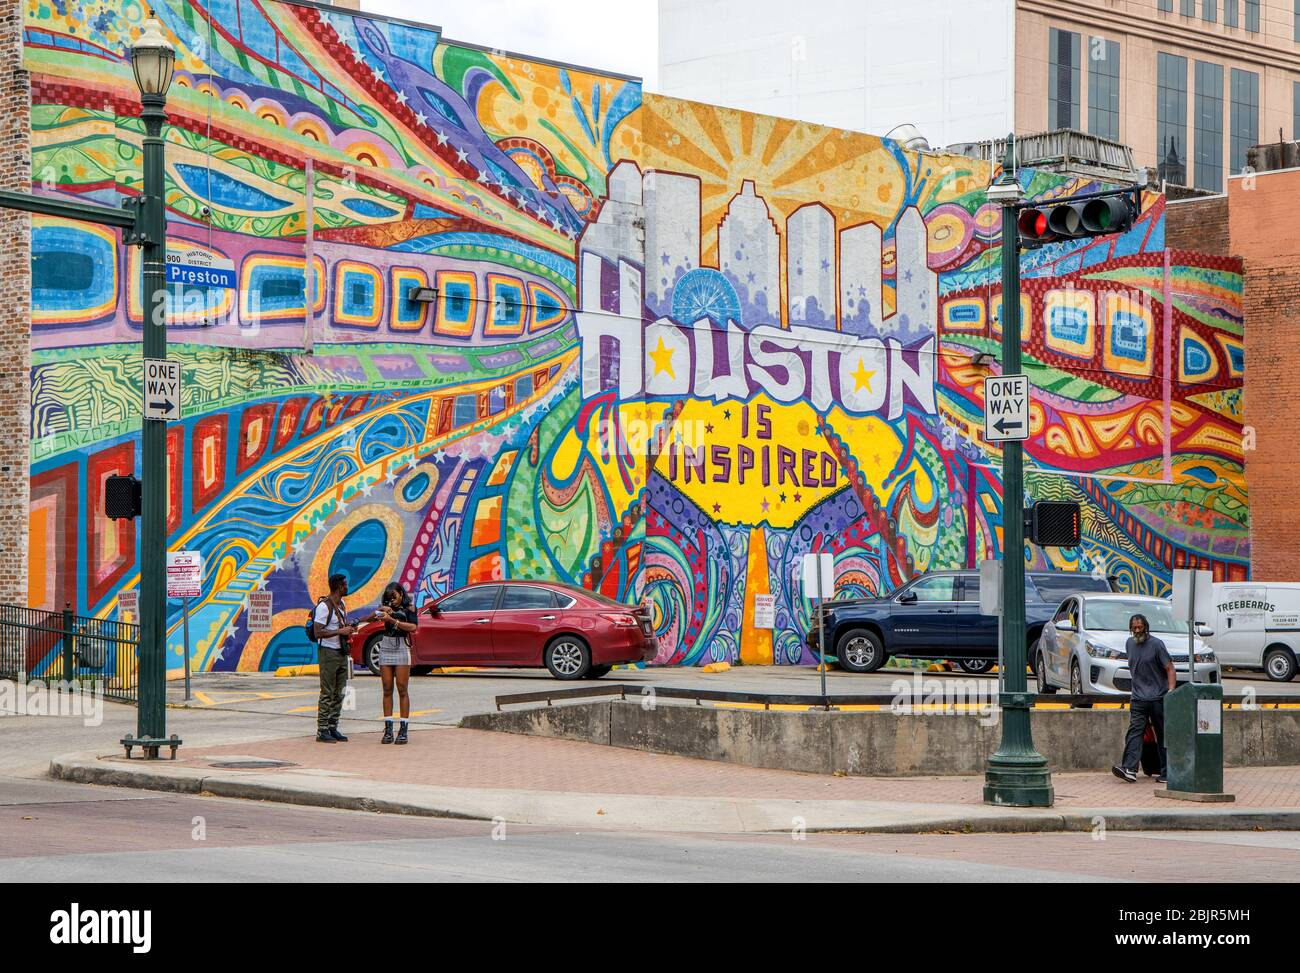 houston is inspiring street art in downtown houston texas Stock Photo